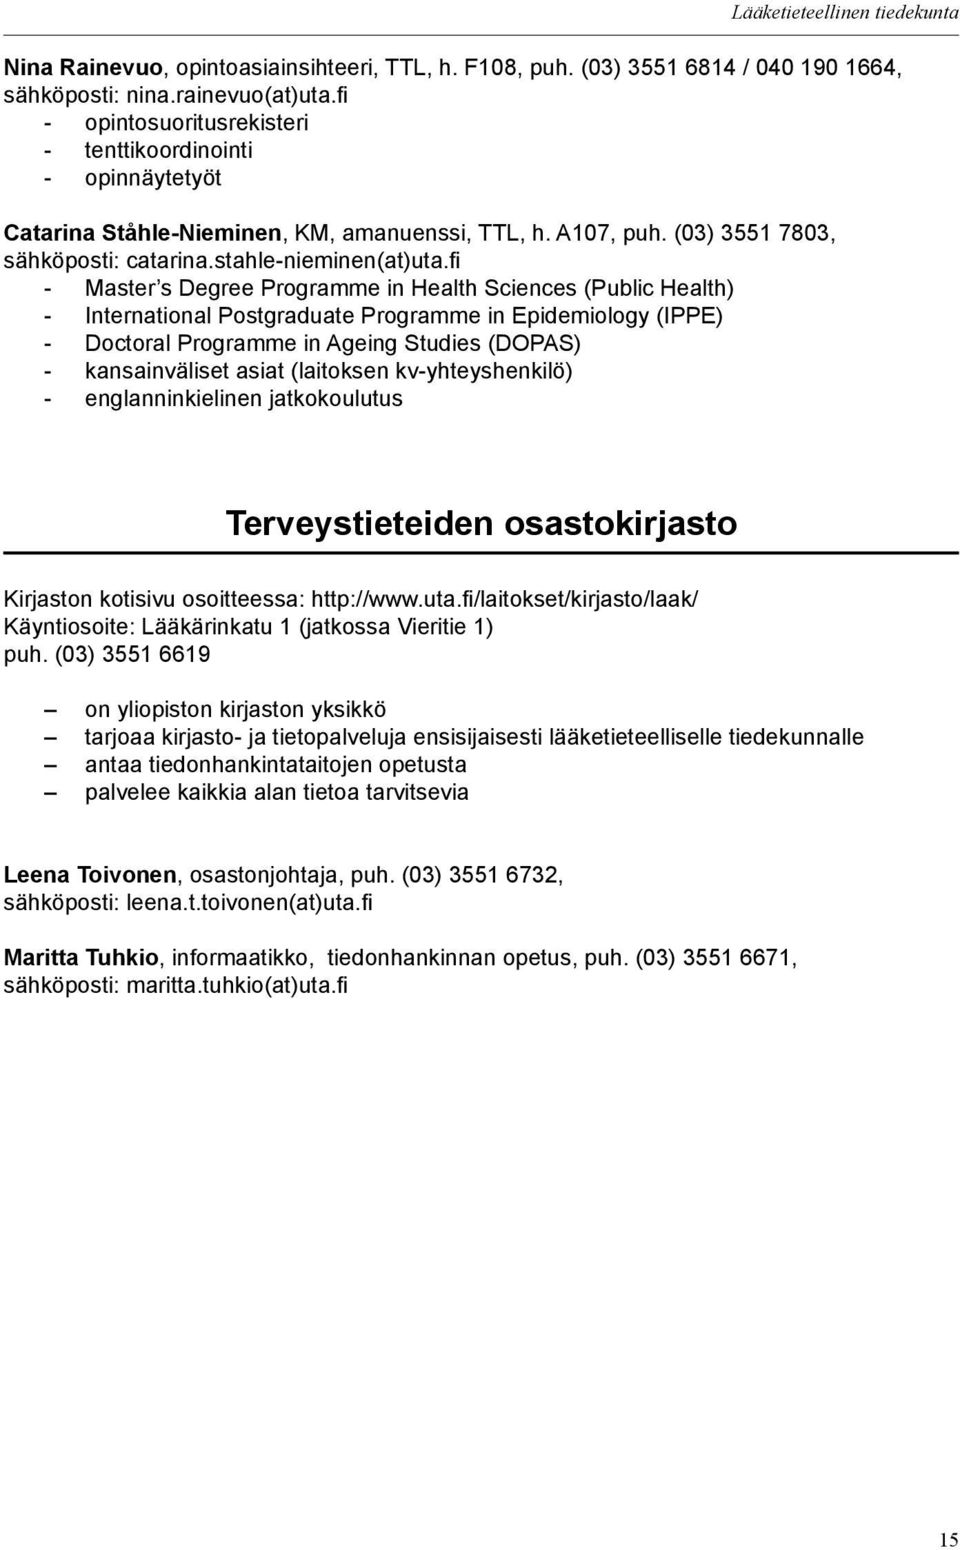 fi - Master s Degree Programme in Health Sciences (Public Health) - International Postgraduate Programme in Epidemiology (IPPE) - Doctoral Programme in Ageing Studies (DOPAS) - kansainväliset asiat